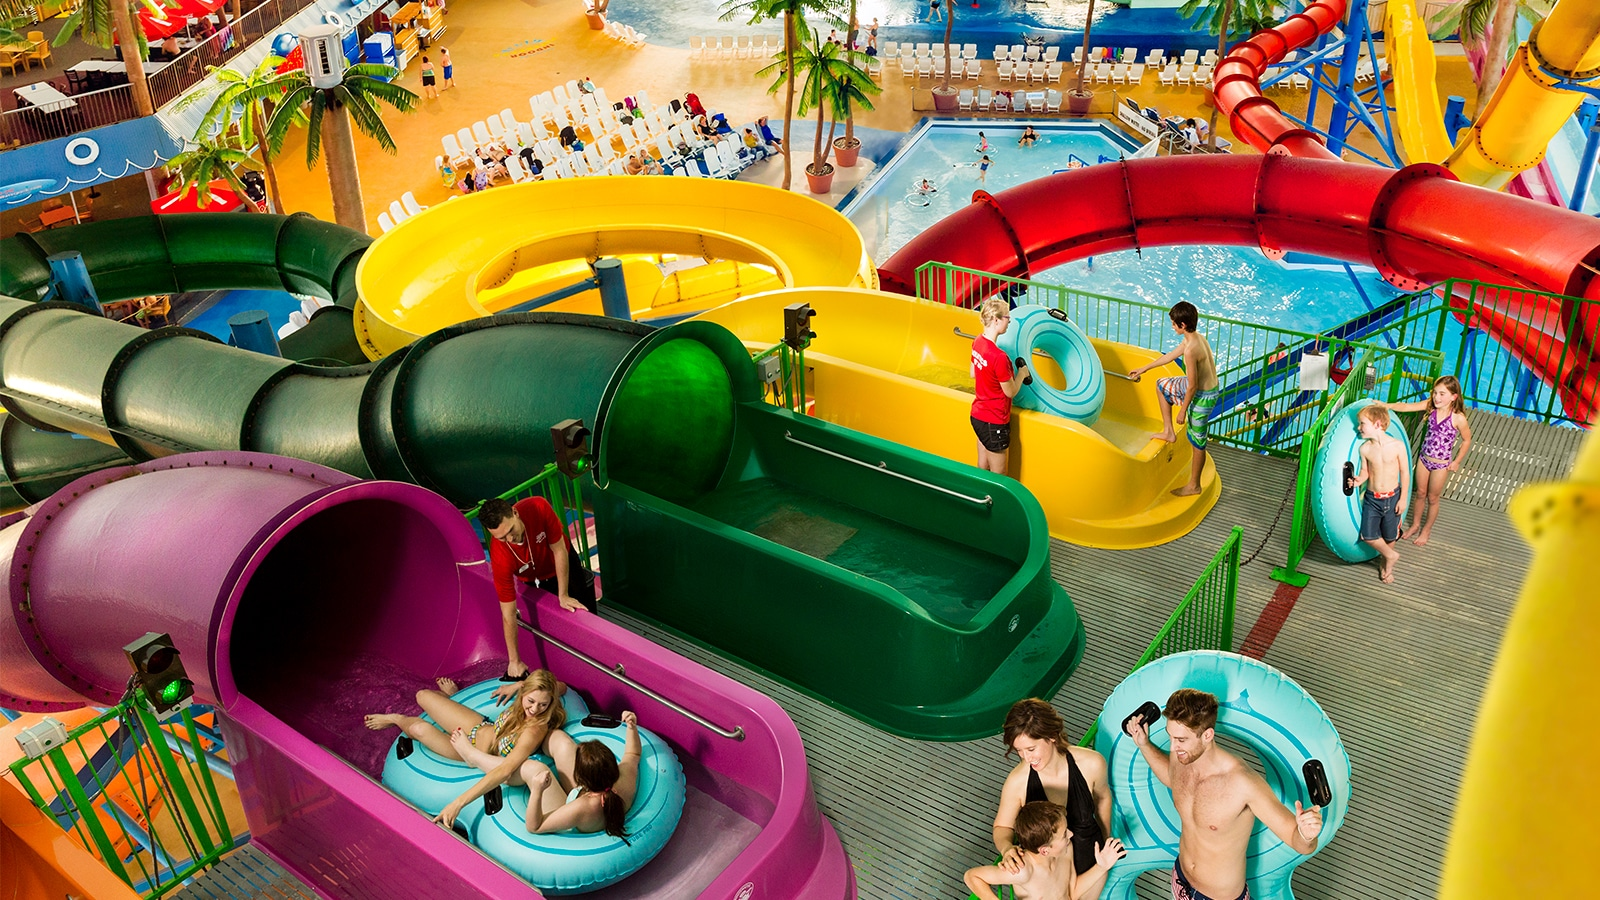 Niagara Falls Hotel And Waterpark Fallsview Indoor Waterpark